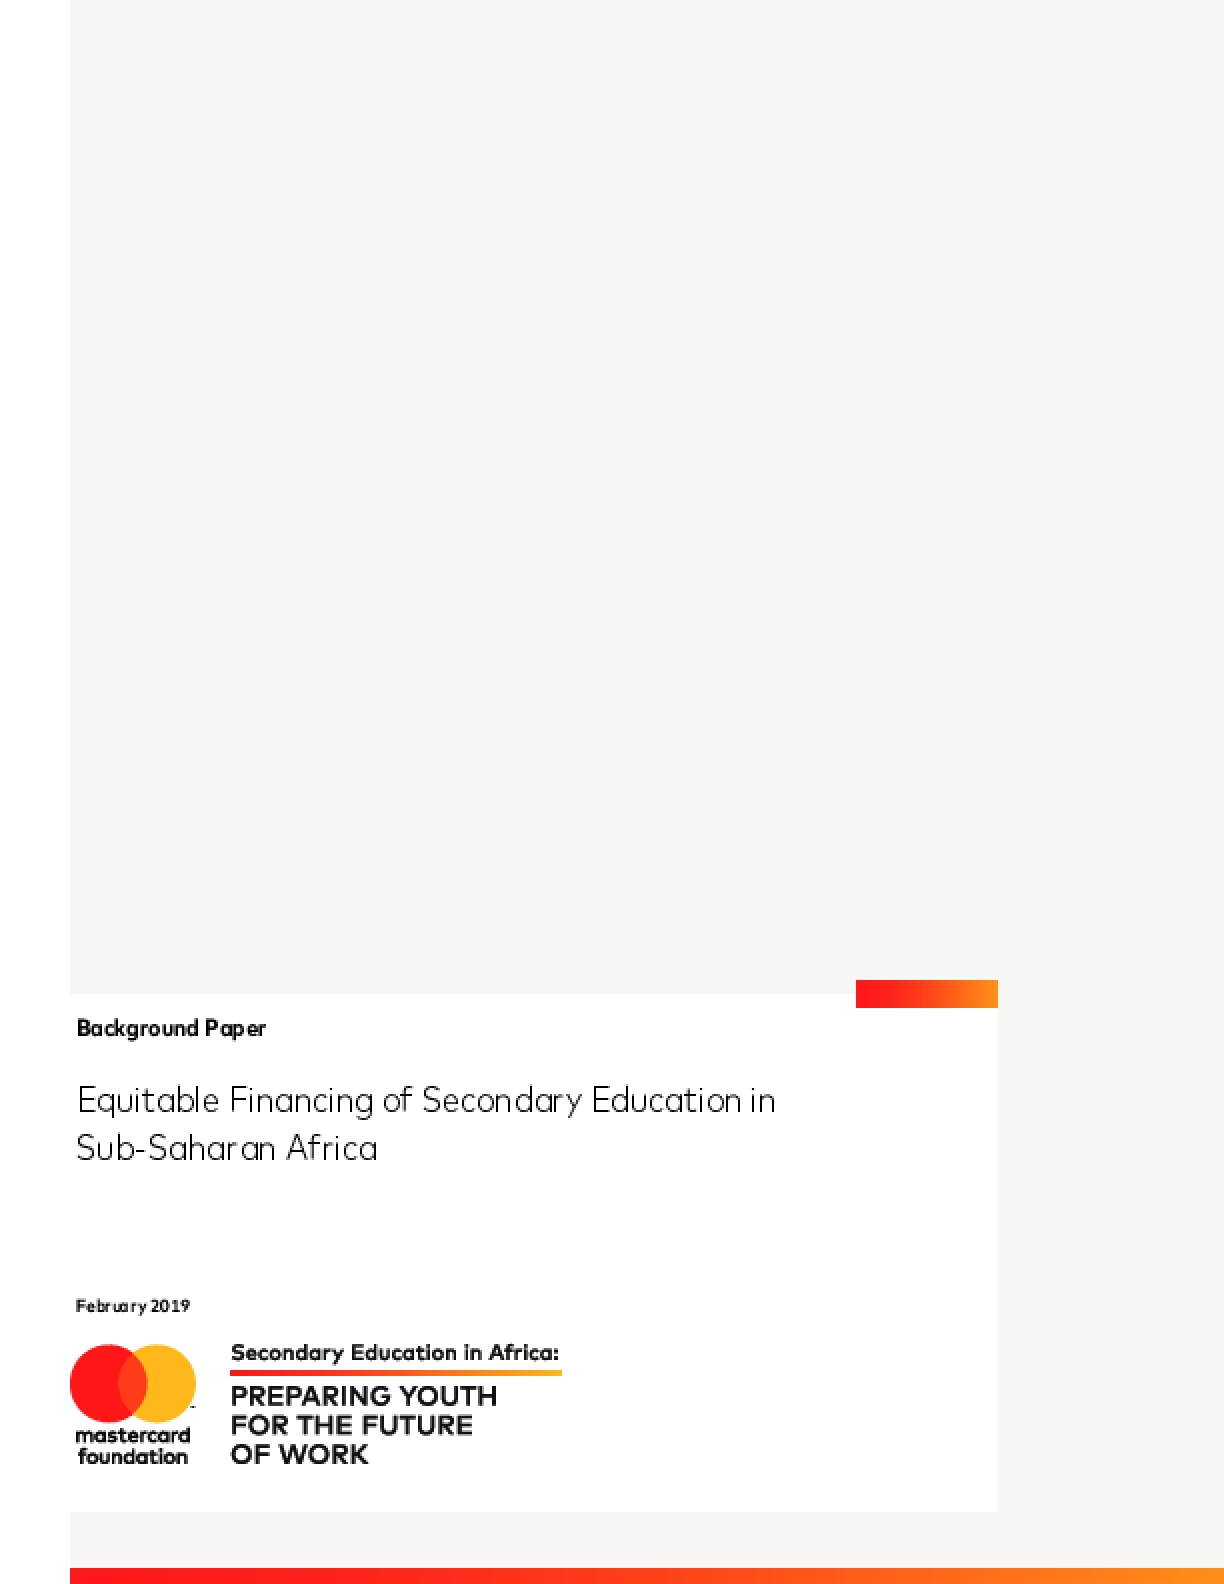 Equitable Financing of Secondary Education in Sub-Saharan Africa